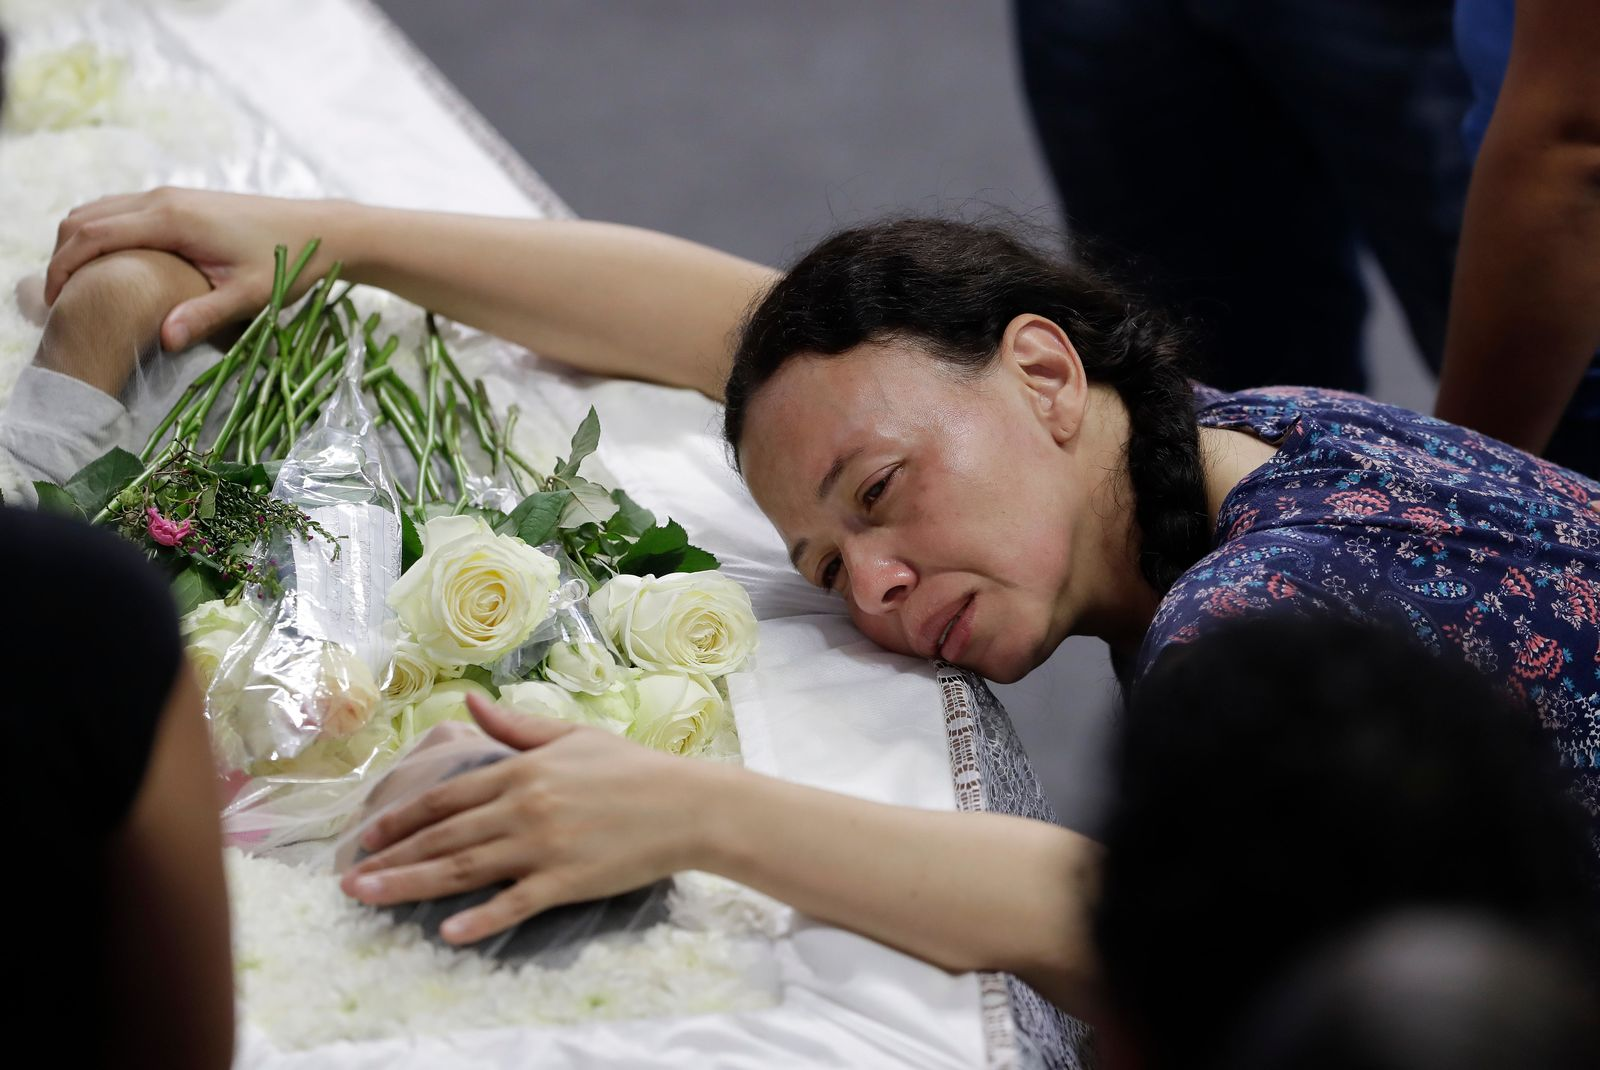 A relative mourns 15-year-old Caio Oliveira, a victim of a mass shooting at the Raul Brasil State School, in Suzano, Brazil, Thursday, March 14, 2019. (AP Photo/Andre Penner)